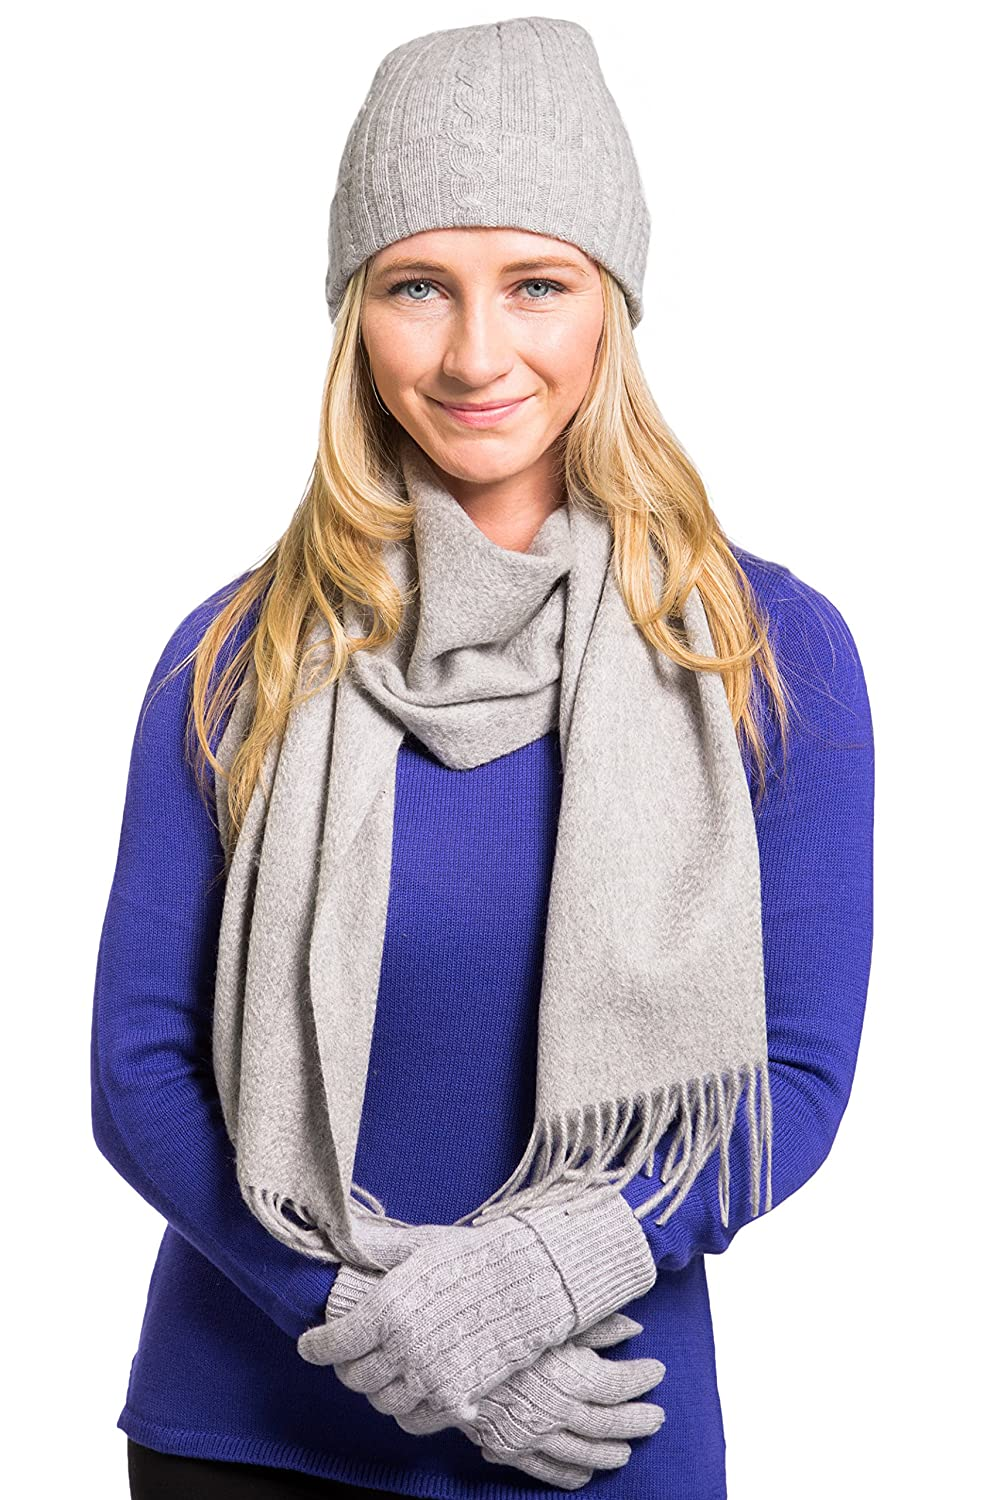 62e9e8d2454 HIGH QUALITY FASHION  This 3 Piece Set is made with 100% pure cashmere  wool. Our cashmere is made from grade A